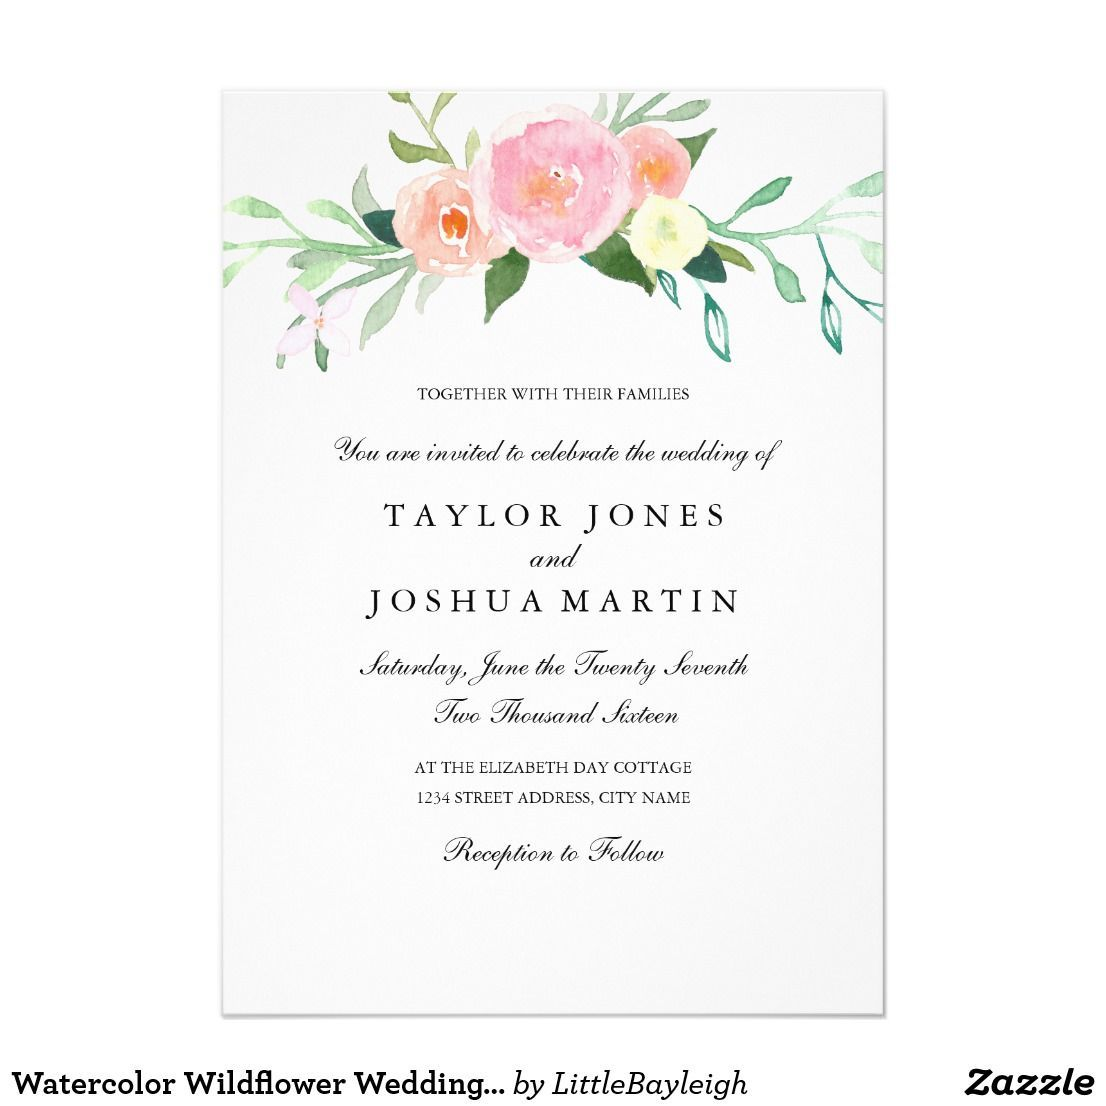 Size 5 x 7 Invitation Flat Card Make custom invitations and